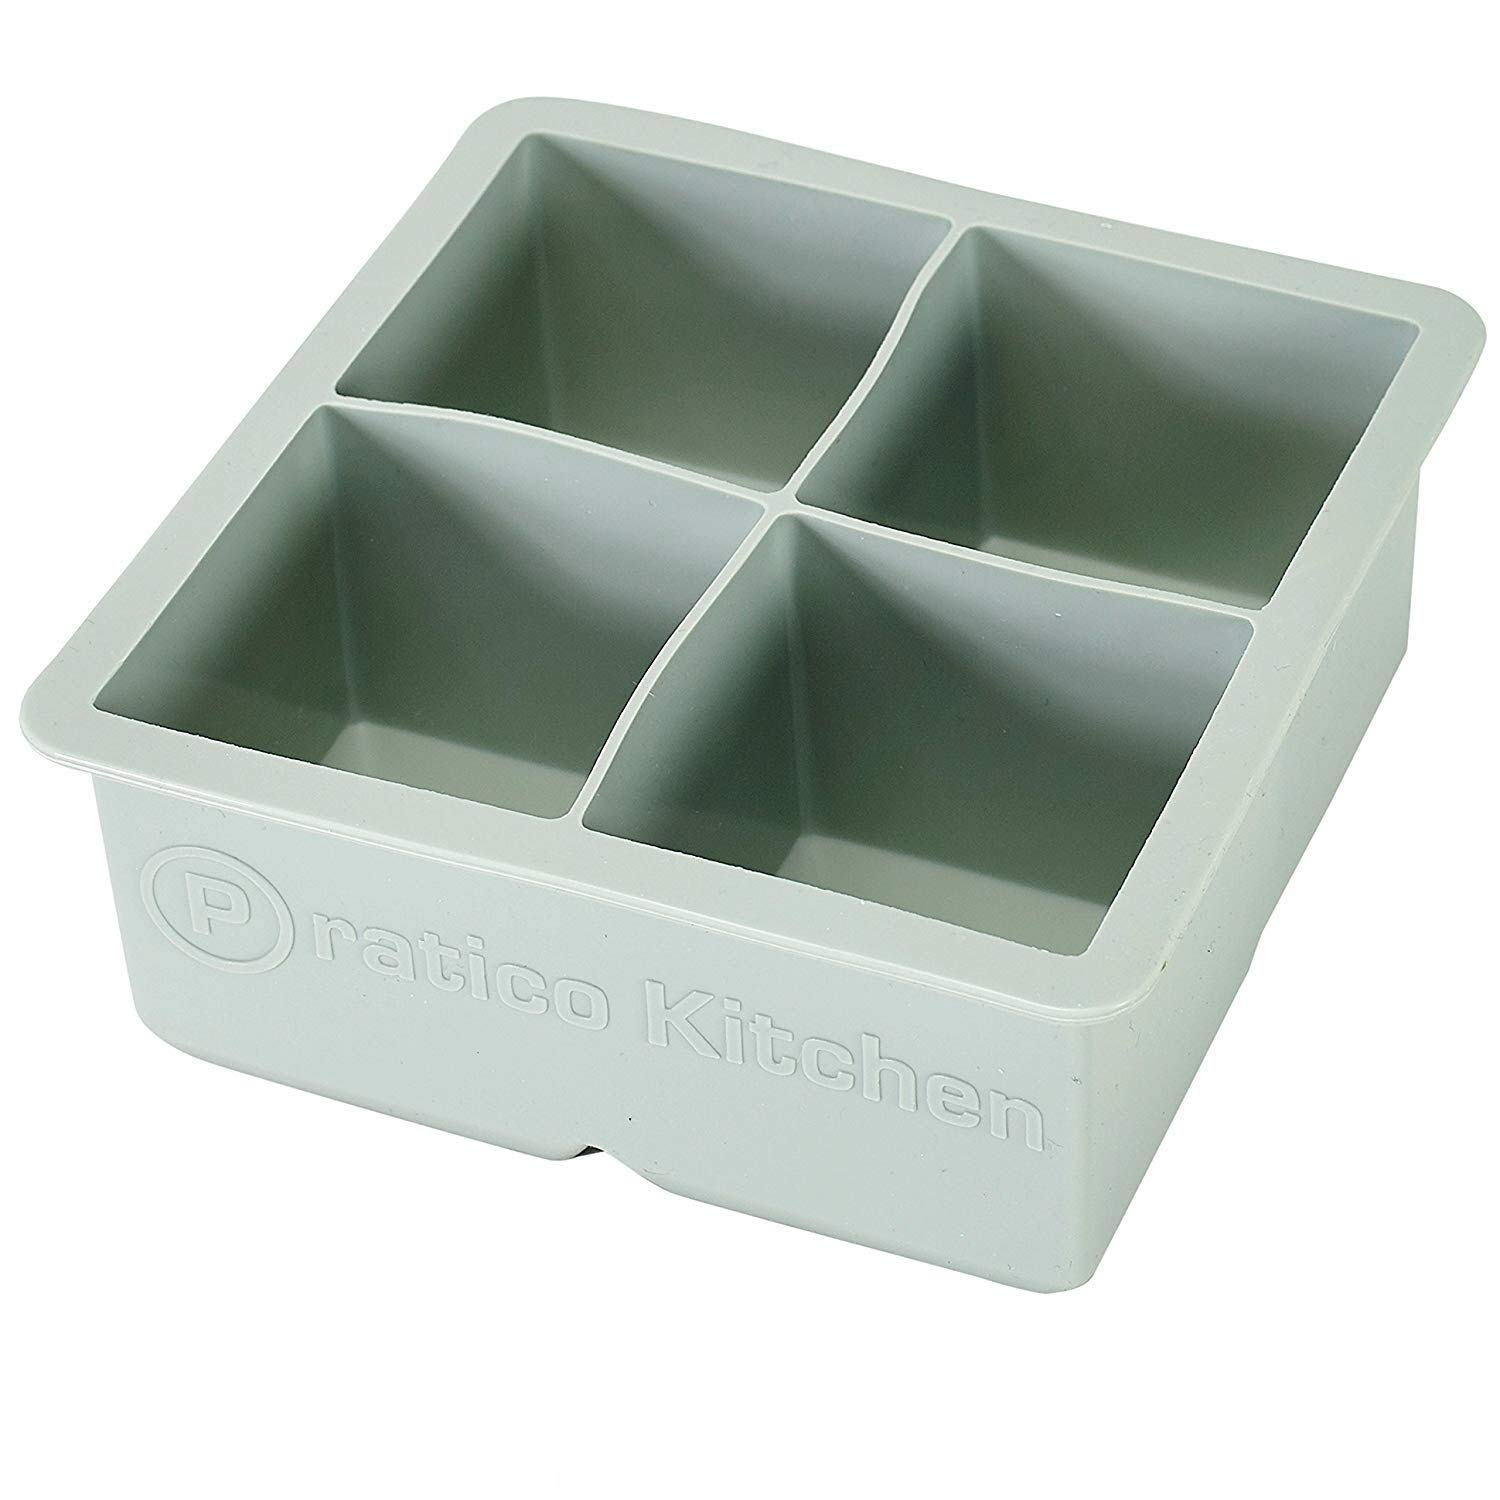 Large Ice Cube Mold - Makes 4 Jumbo 2.25 Inch Big Ice Cubes - Prevent Diluting Your Scotch, Whiskey, Cocktails - Keep Drinks Chilled with PratiCube Large Ice Cube Trays - 1 Pack Pratico Kitchen COMINHKPR92749